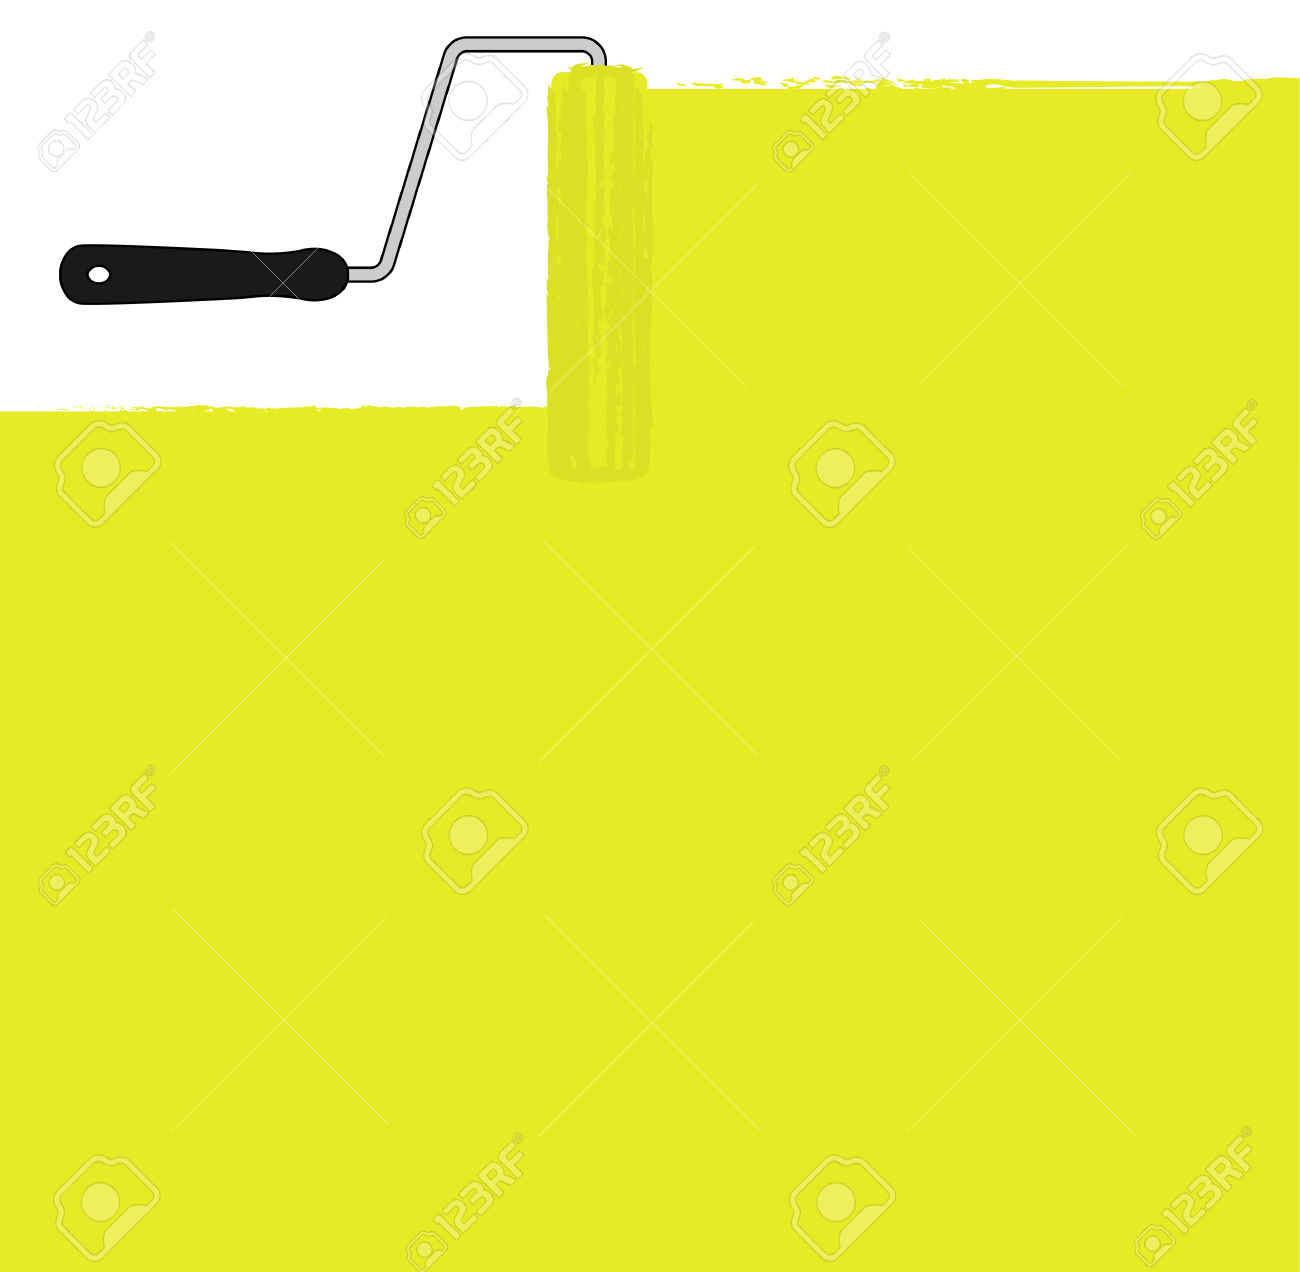 Yellow Paint Roller Painting The Wall. Vector Background Clip.